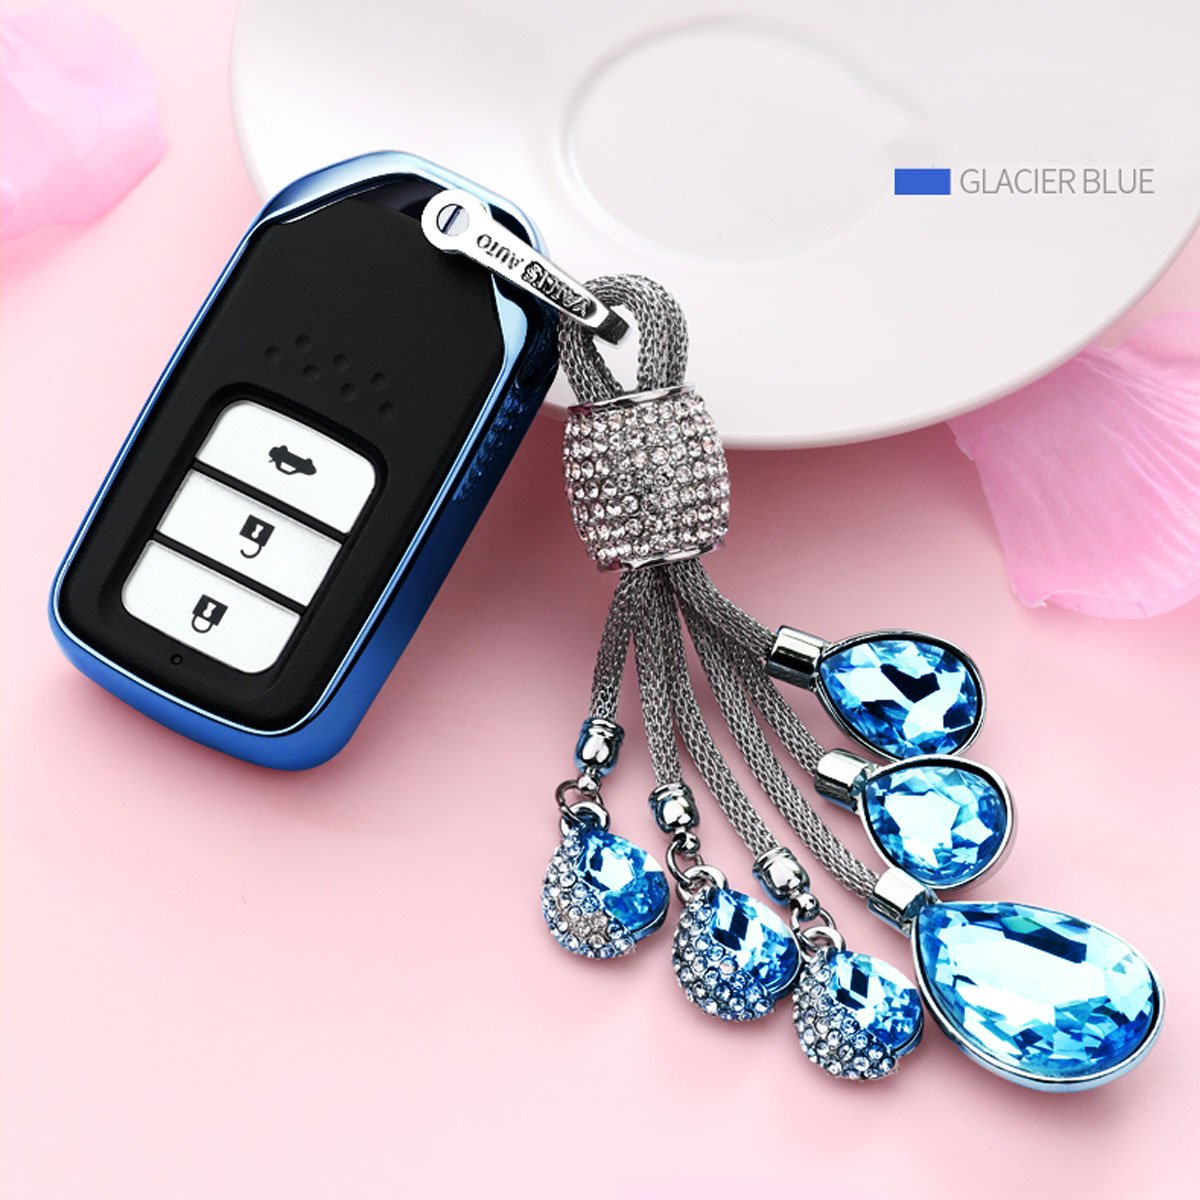 MODIPIM Keyless Entry Remote Cover Soft TPU 2//3//4 Buttons Smart Key Fob Case with Braided Cord Keychain for Honda Civic Fit CR-V XR-V Jade Accord Vezel Pilot Crider Odyssey Color Blue